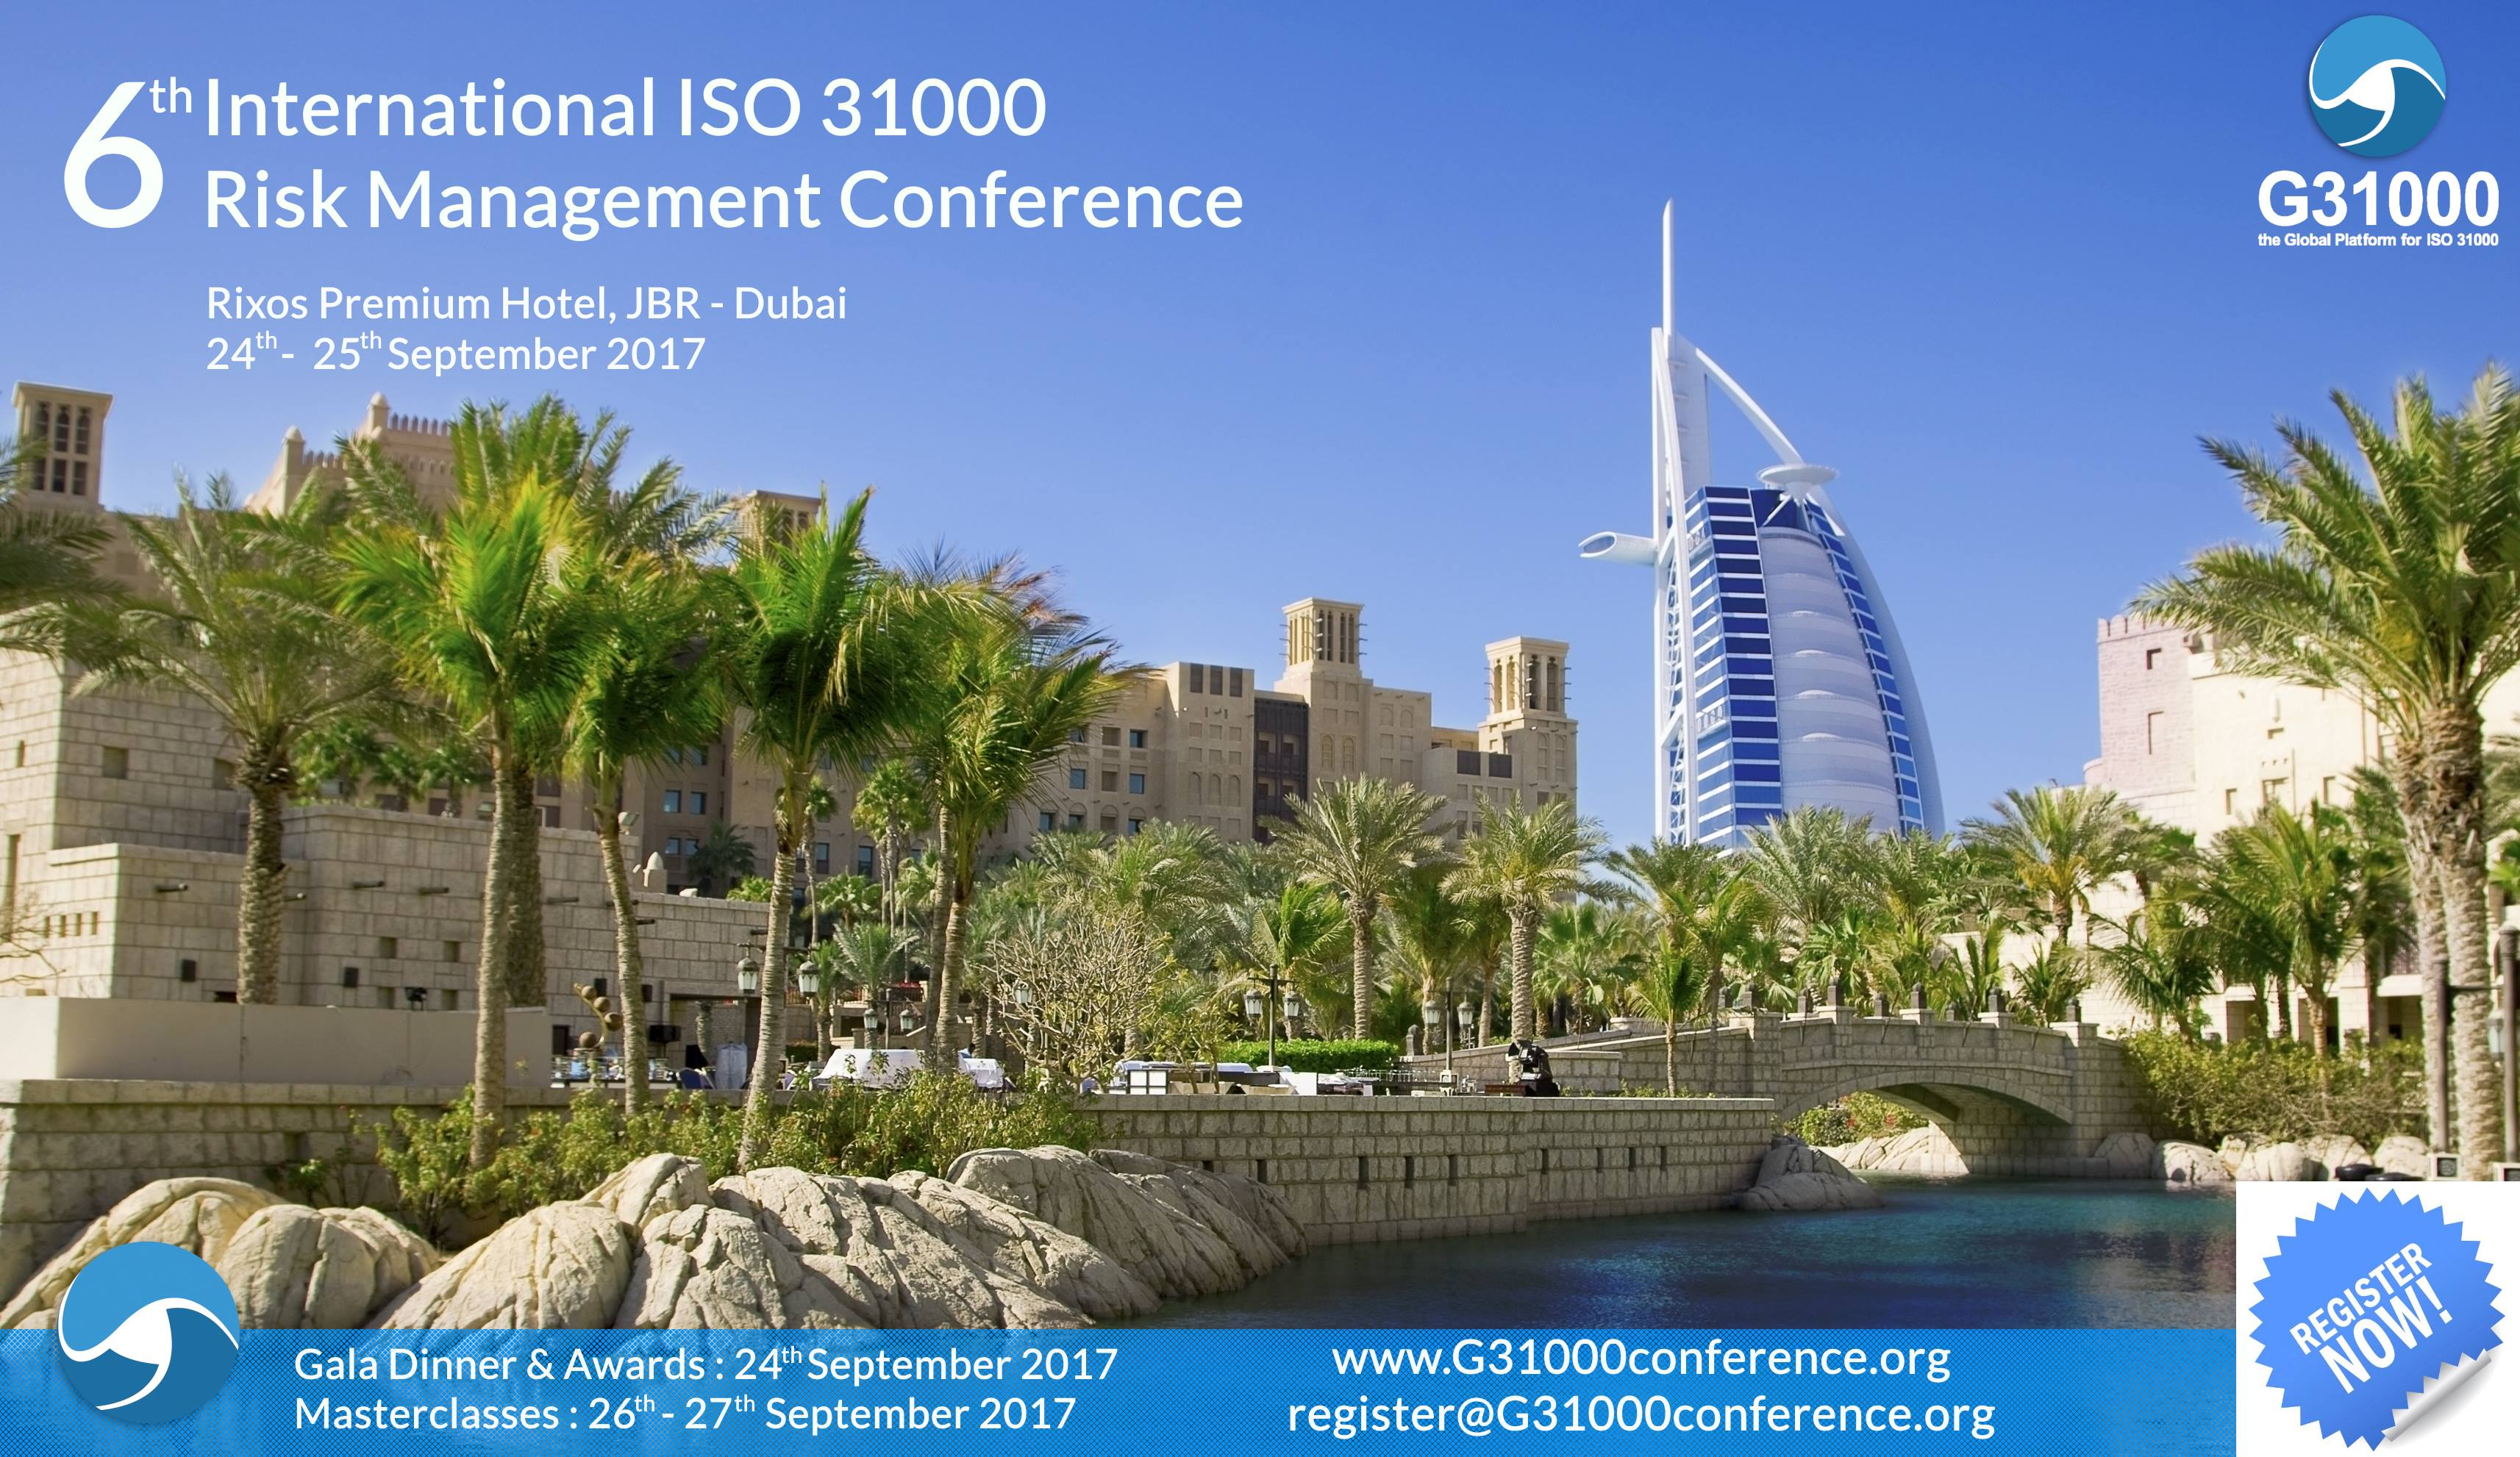 3 free tickets to G31000 risk management conference in Dubai 24-25 September 2017